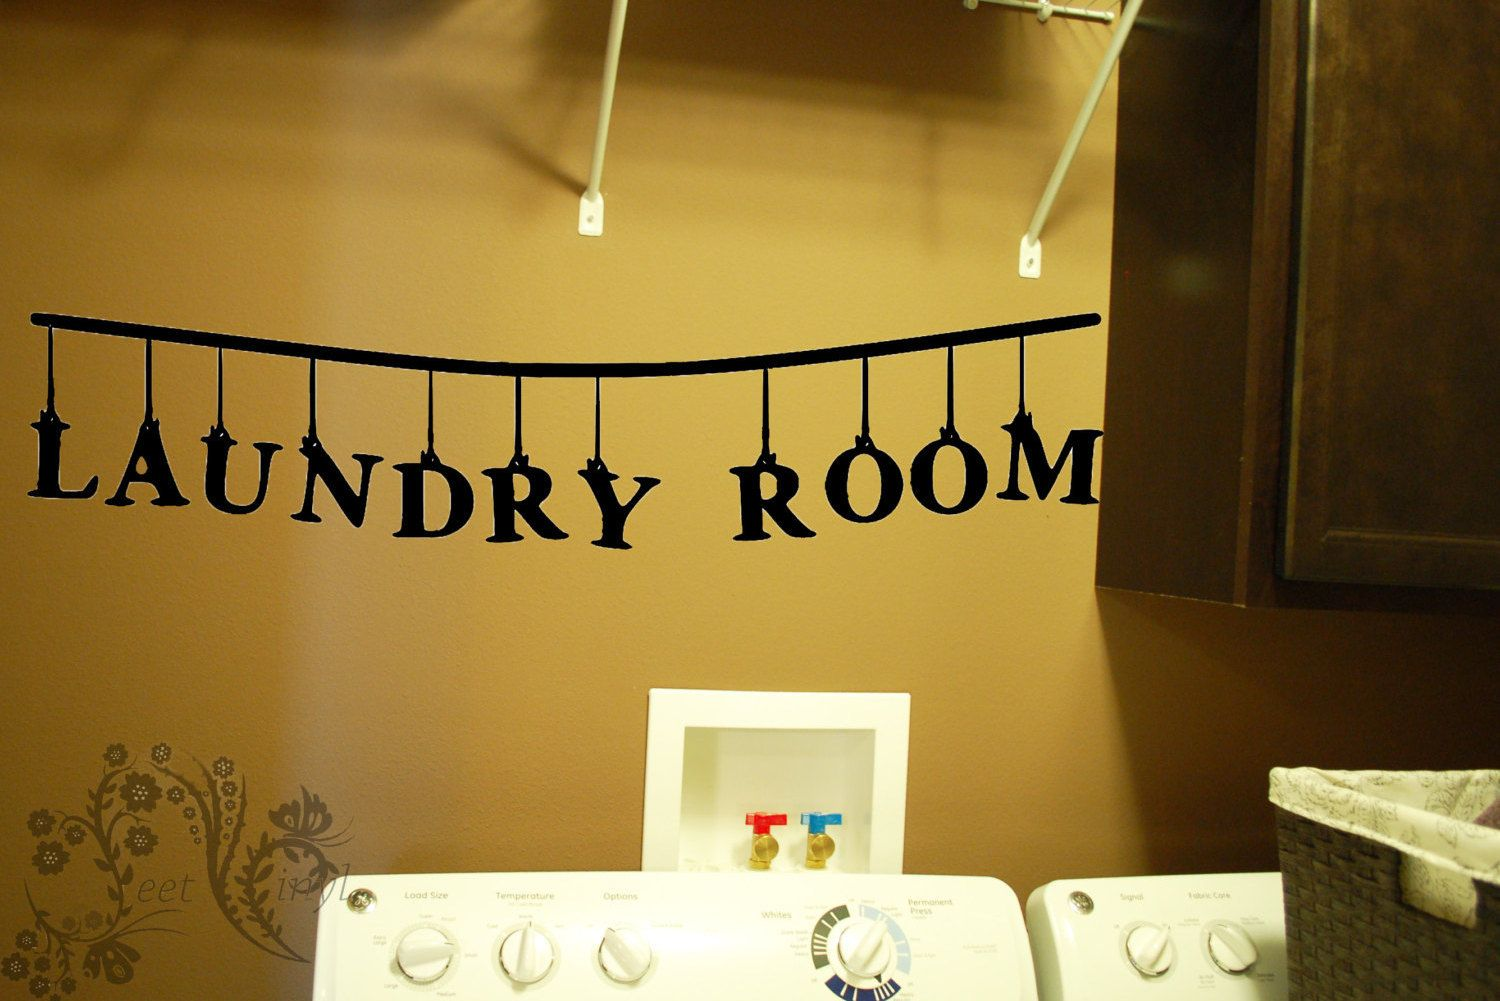 Laundry Room - Wall Decals - Wall Decal - Wall Vinyl - Wall Décor ...